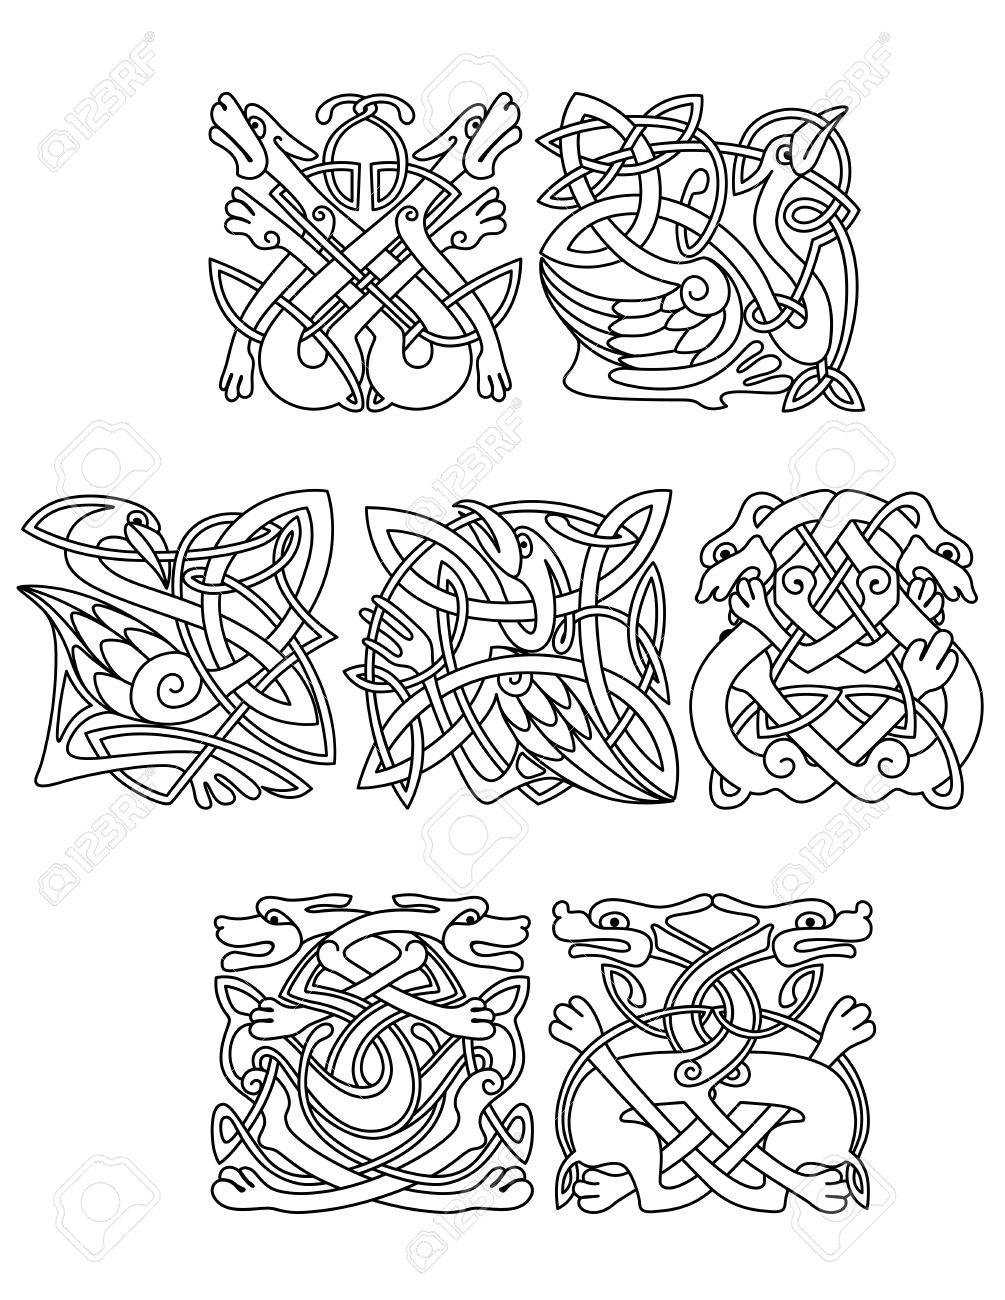 Abstract Contoured Animals And Birds In Traditional Celtic Knot